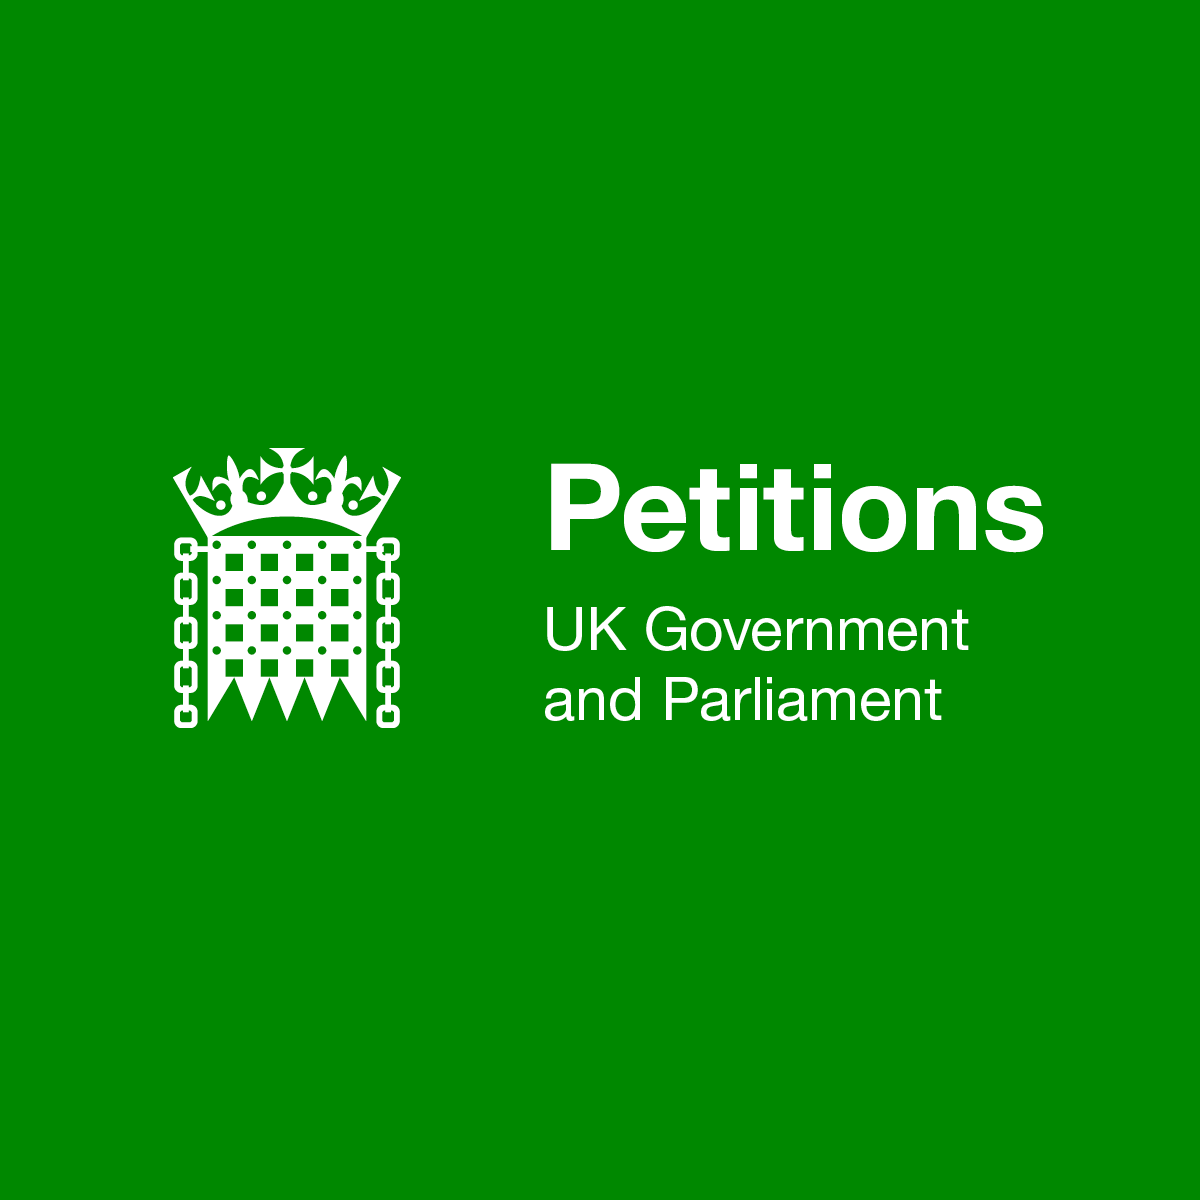 An public inquiry into the causes surrounding missing Black people - Petitions